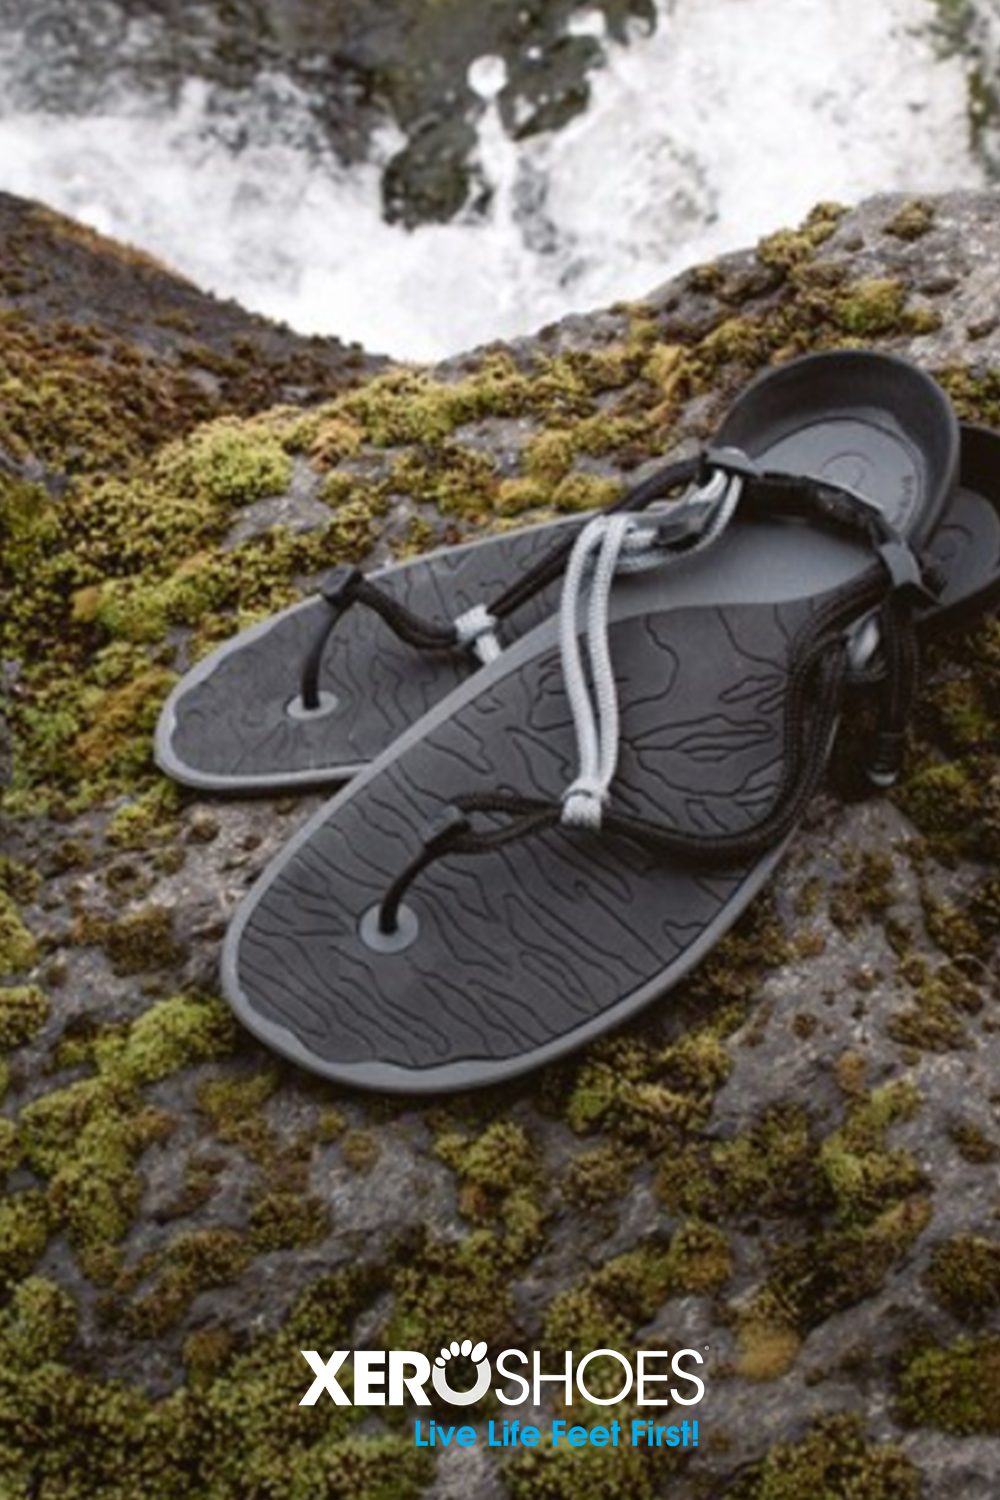 The freedom of natural barefoot movement, in a comfortable summer sandal. Perfect for travel, hiking...